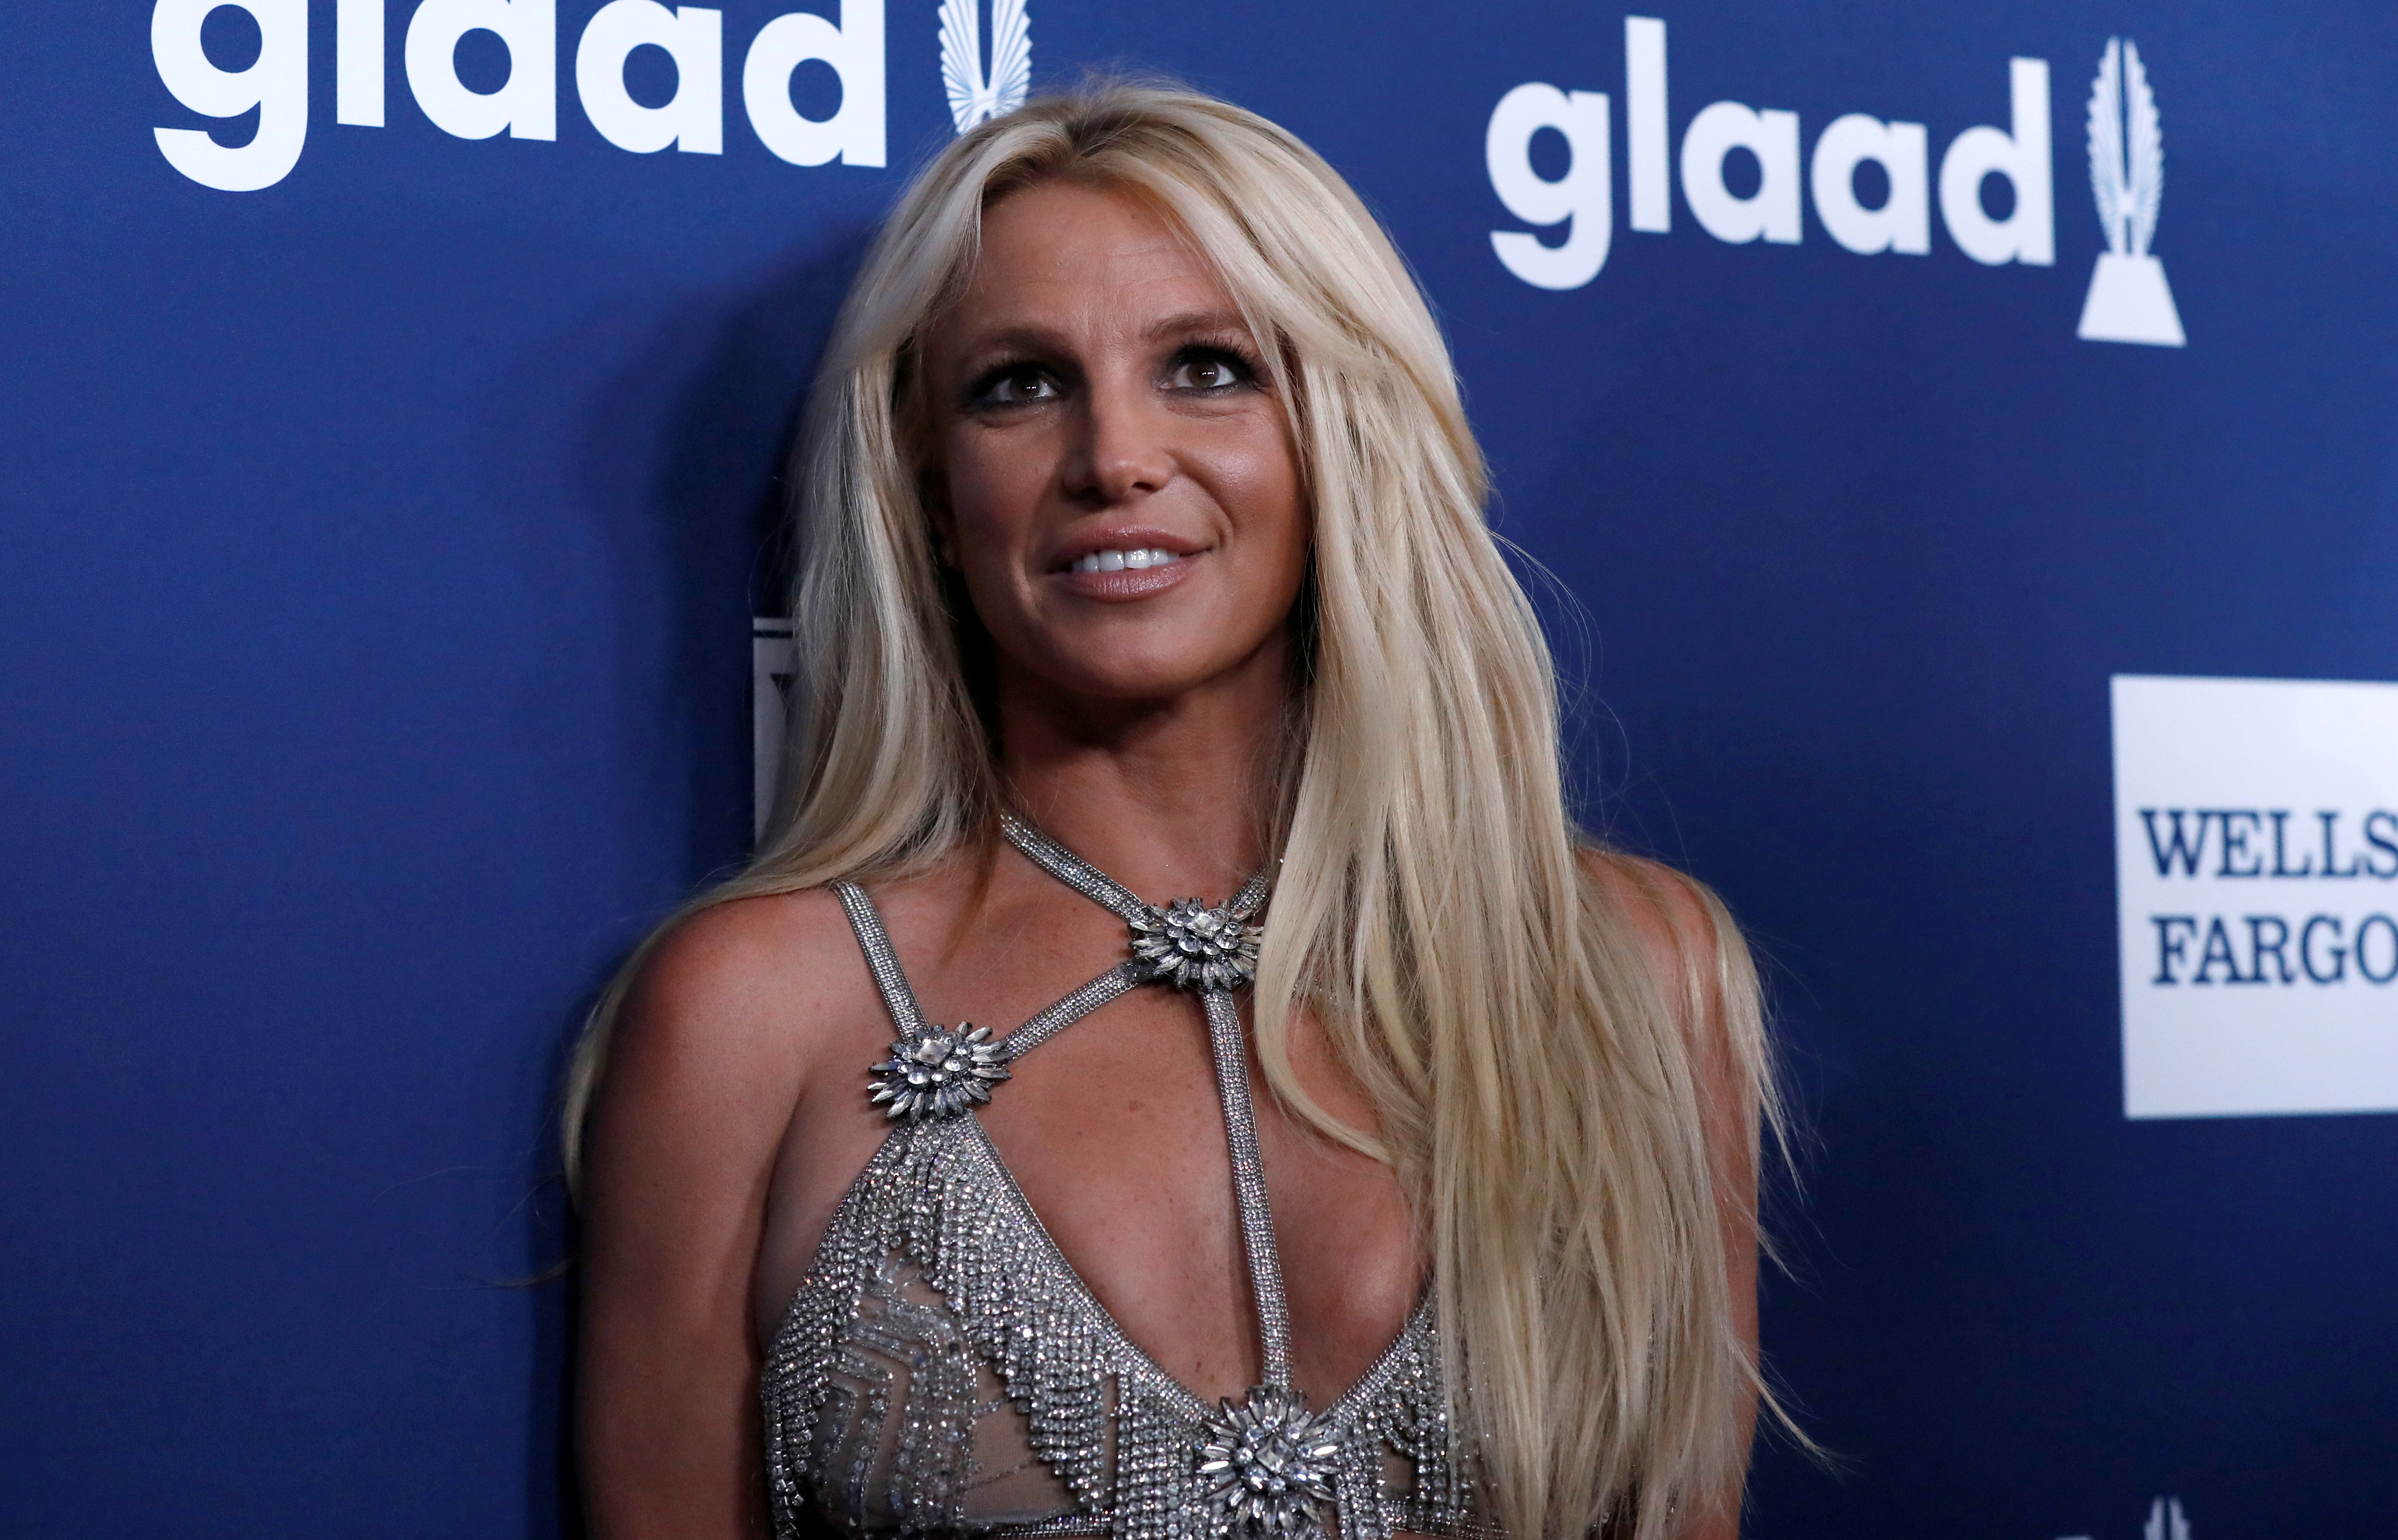 Singer Britney Spears poses at the 29th Annual GLAAD Media Awards in Beverly Hills, California, U.S., April12, 2018. REUTERS/Mario Anzuoni/File Photo